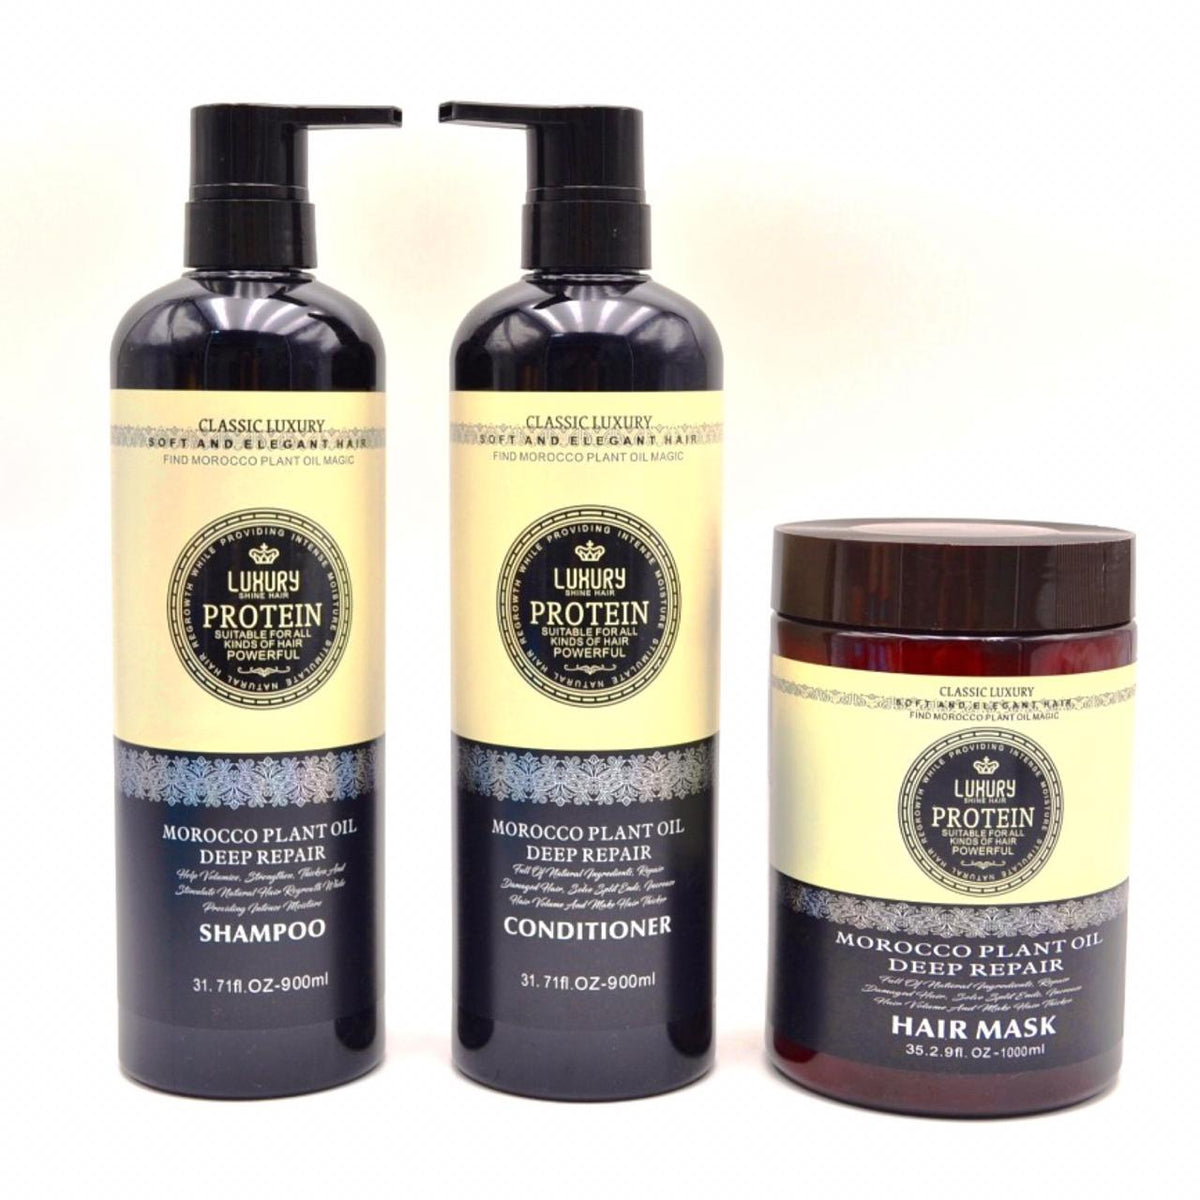 Morocco oil, Hair care set, Damaged hair, Hair repair, Hair kit, Hair bundle, Hair treatment